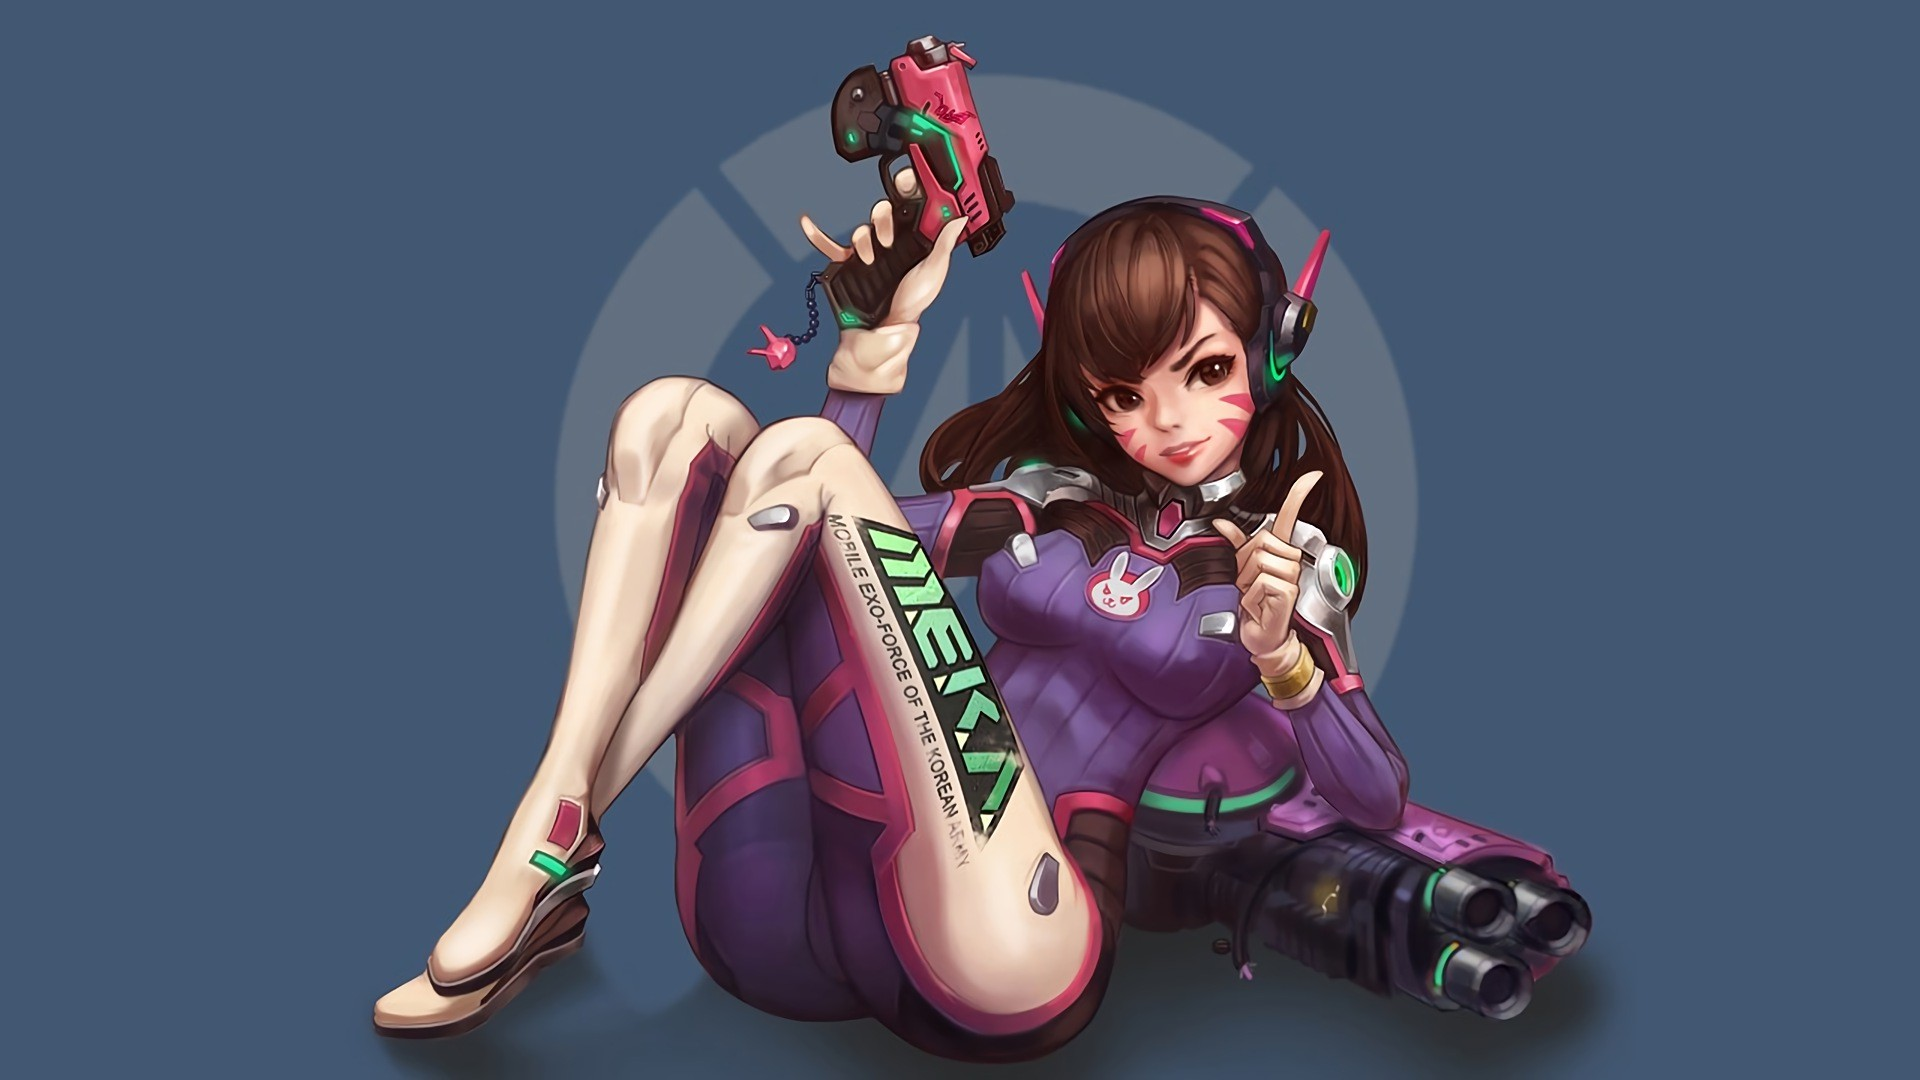 Dva Sexy Gamegirl Overwatch is a high definition desktop wallpaper from our  collection of free background